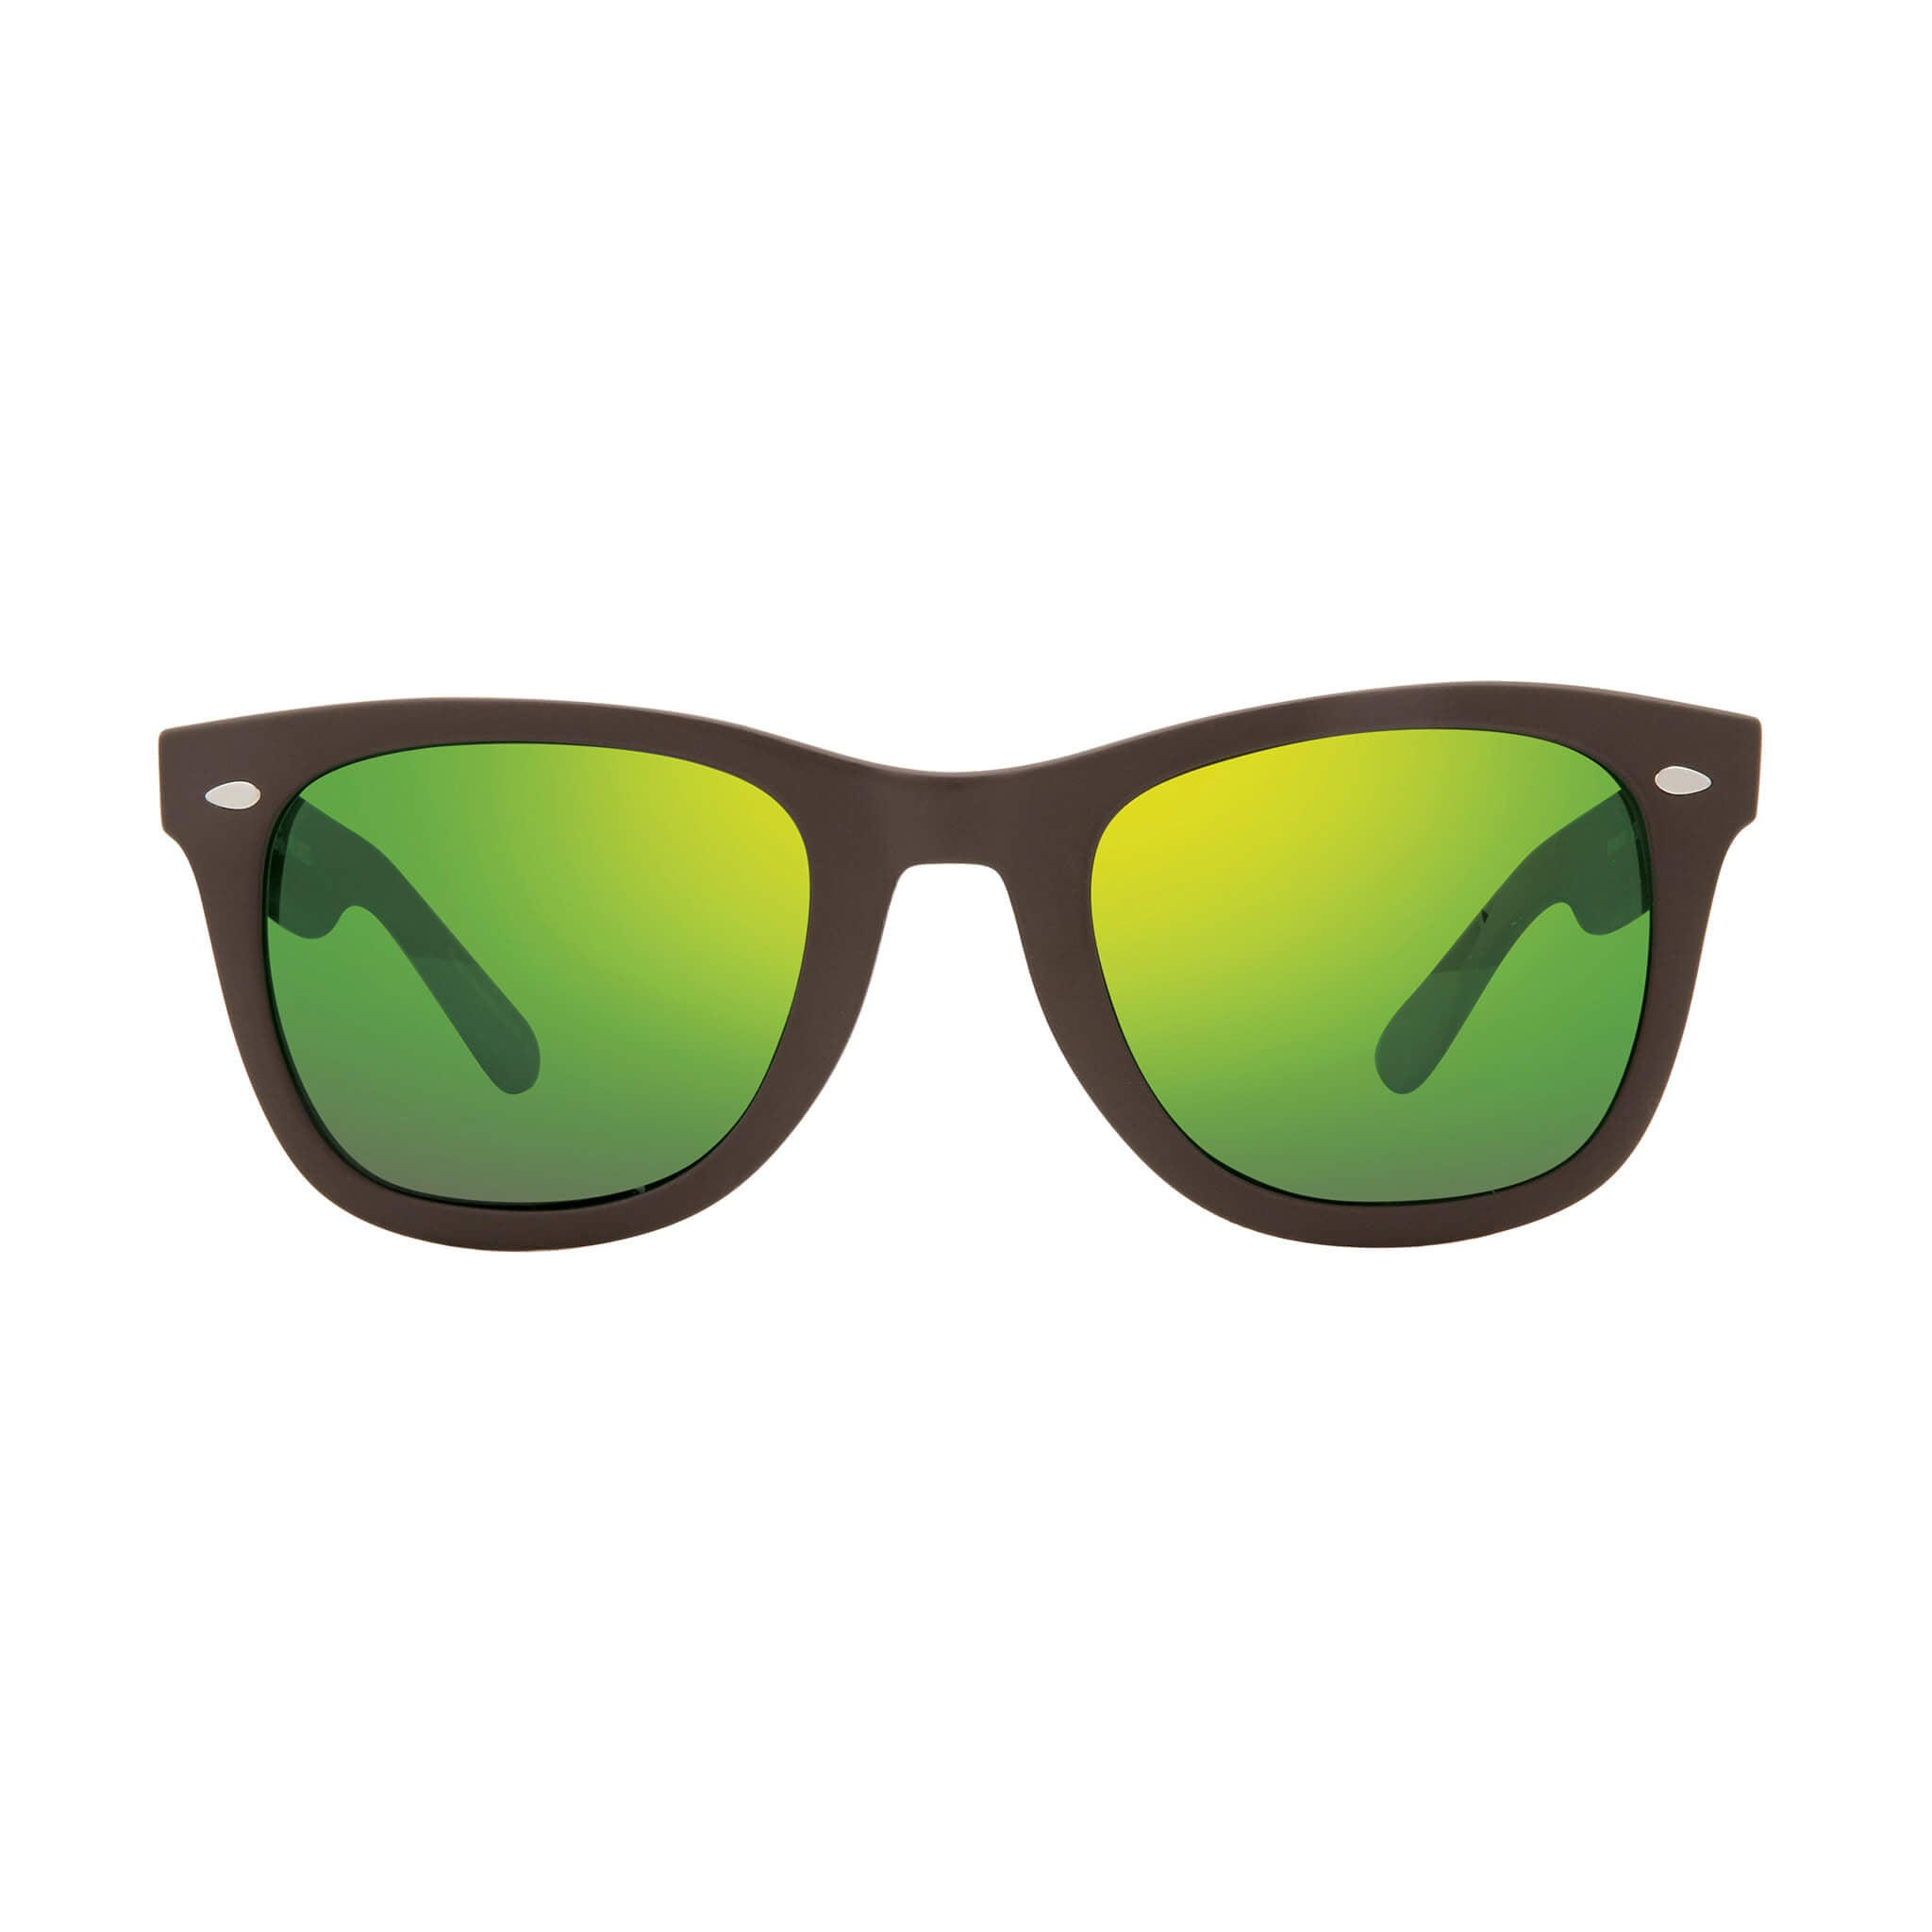 Forge Matte brown + green water lens:Front view of Bear Grylls Revo Brown with Green Water lens sunglasses